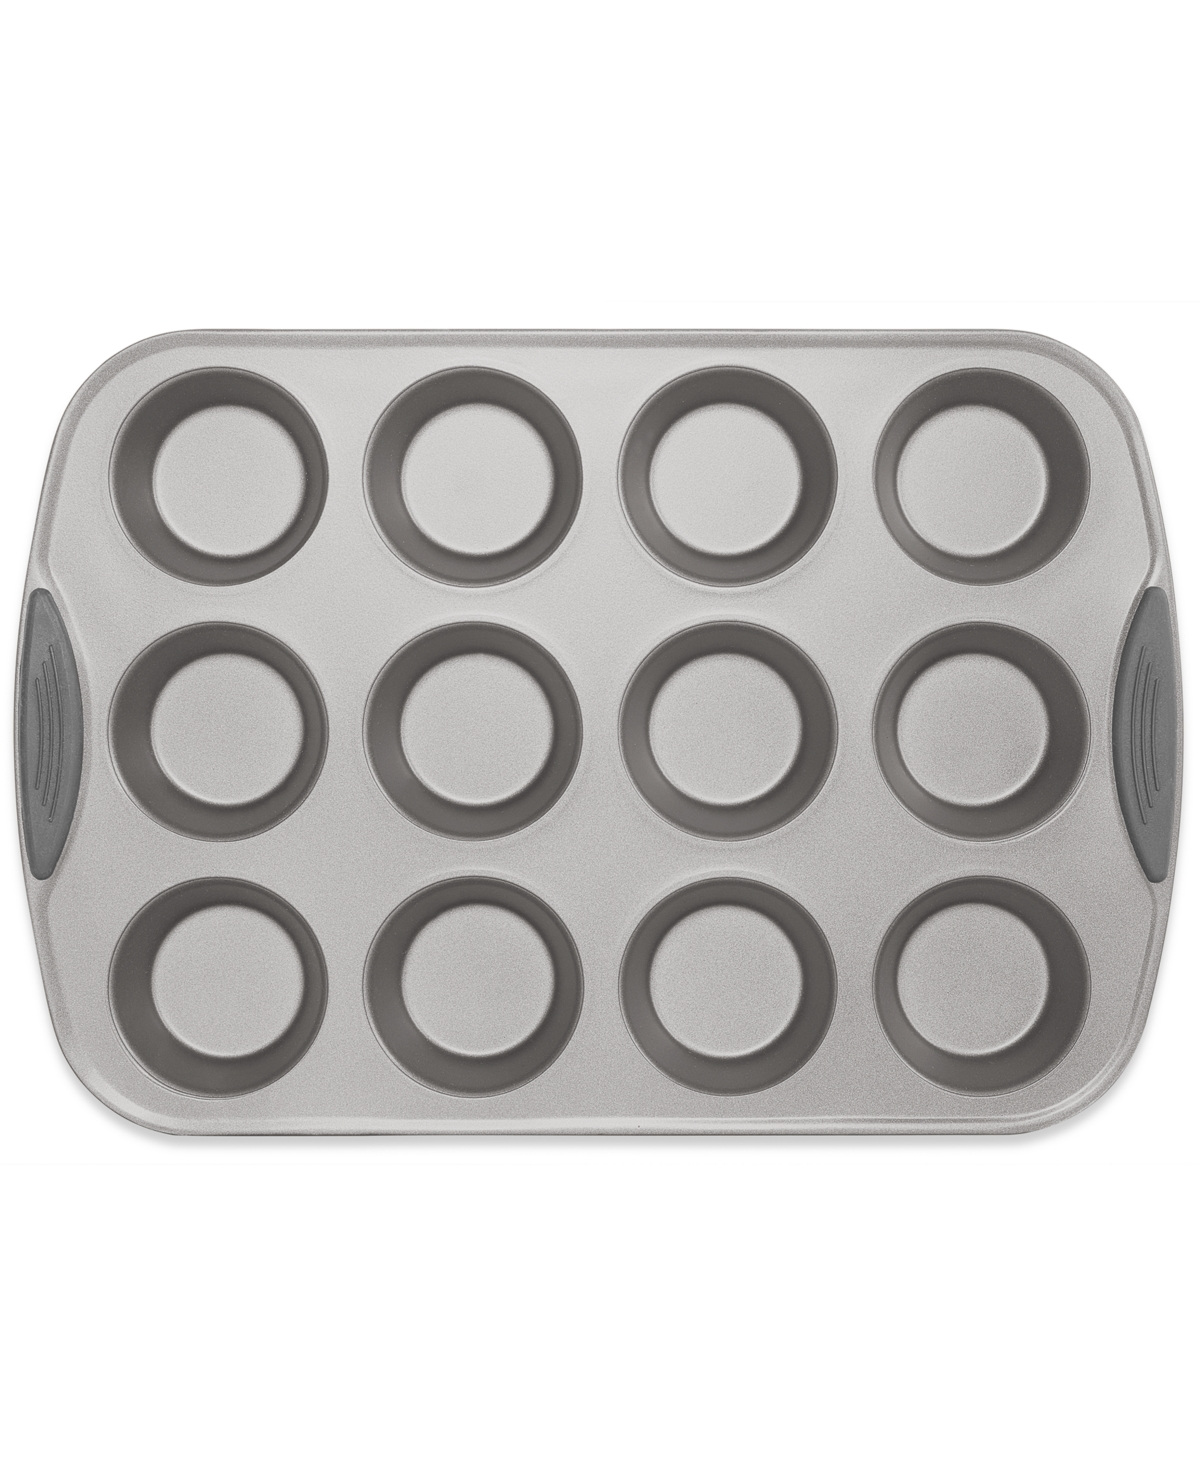 Martha Stewart Collection 12-Cup Nonstick Muffin Pan, Created for Macy's